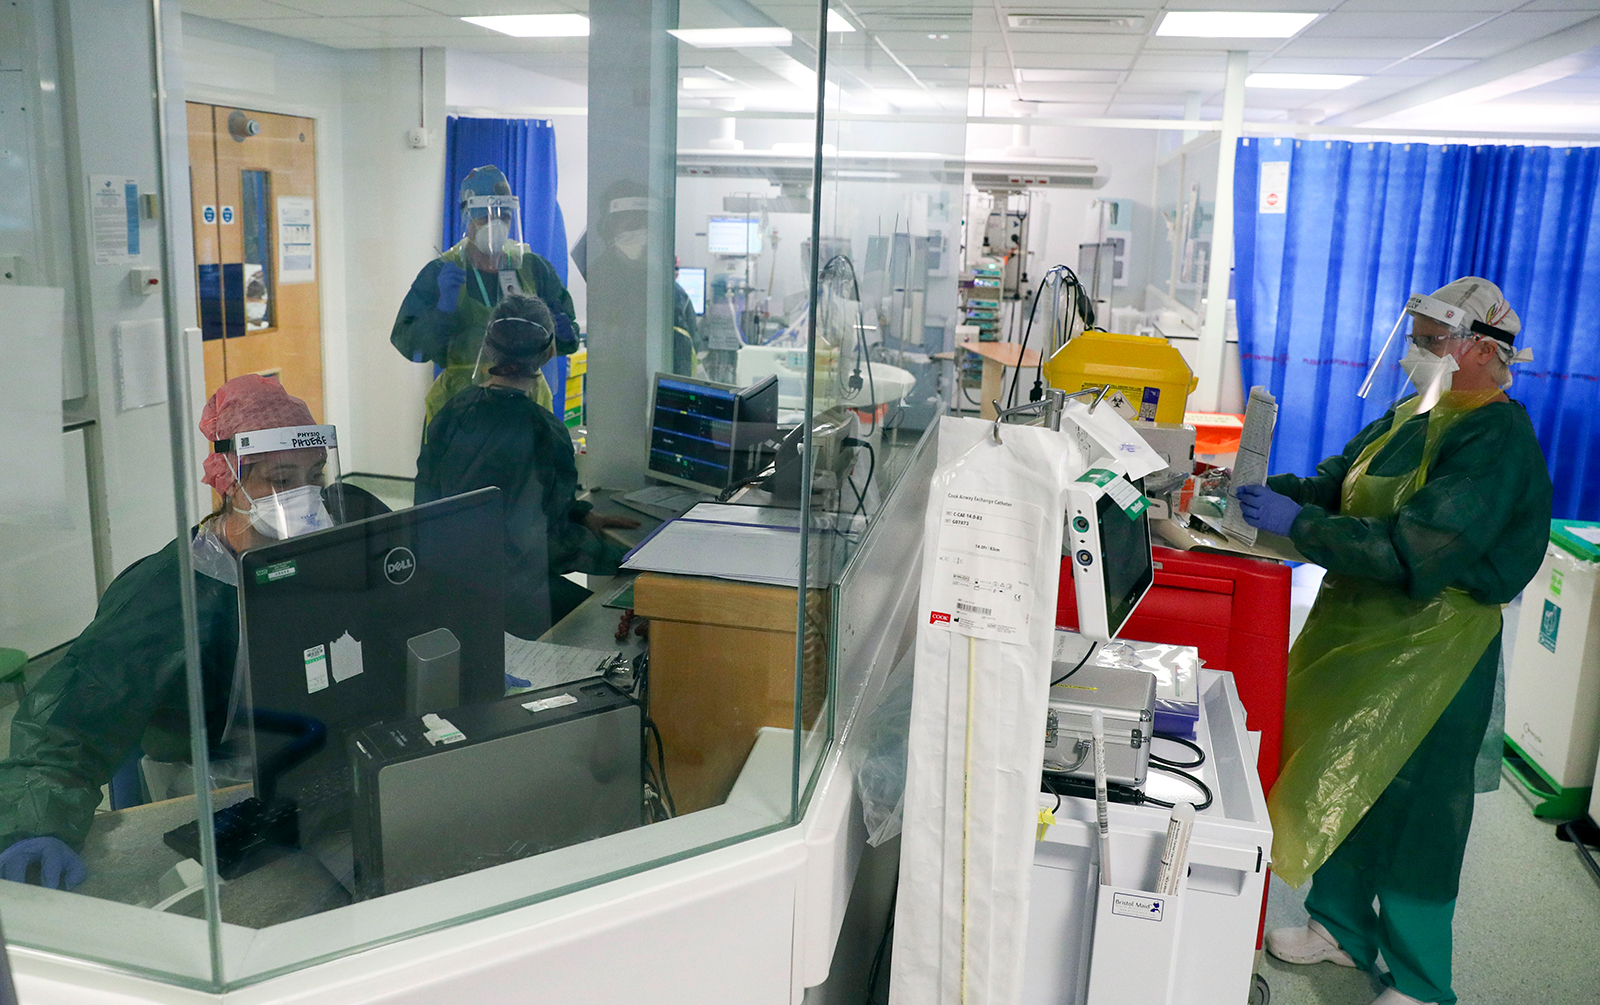 Medics at work in an Intensive Care ward treating coronavirus patients at Frimley Park Hospital, in Camberley, England, on May 22.